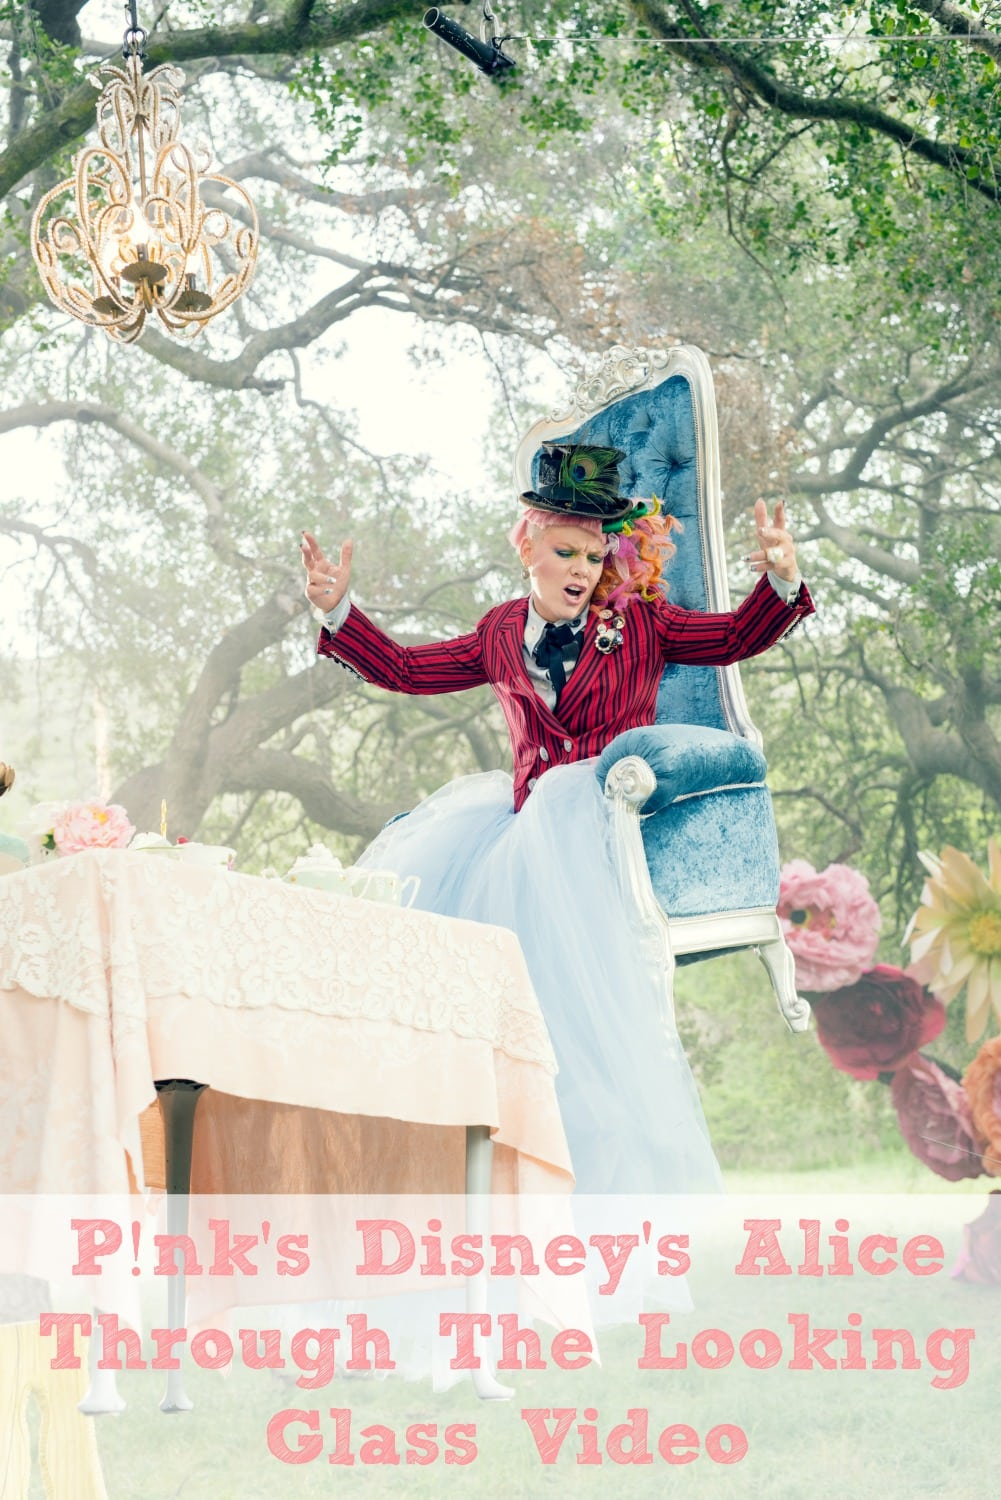 Pinks Disney's Alice Through The Looking Glass Video